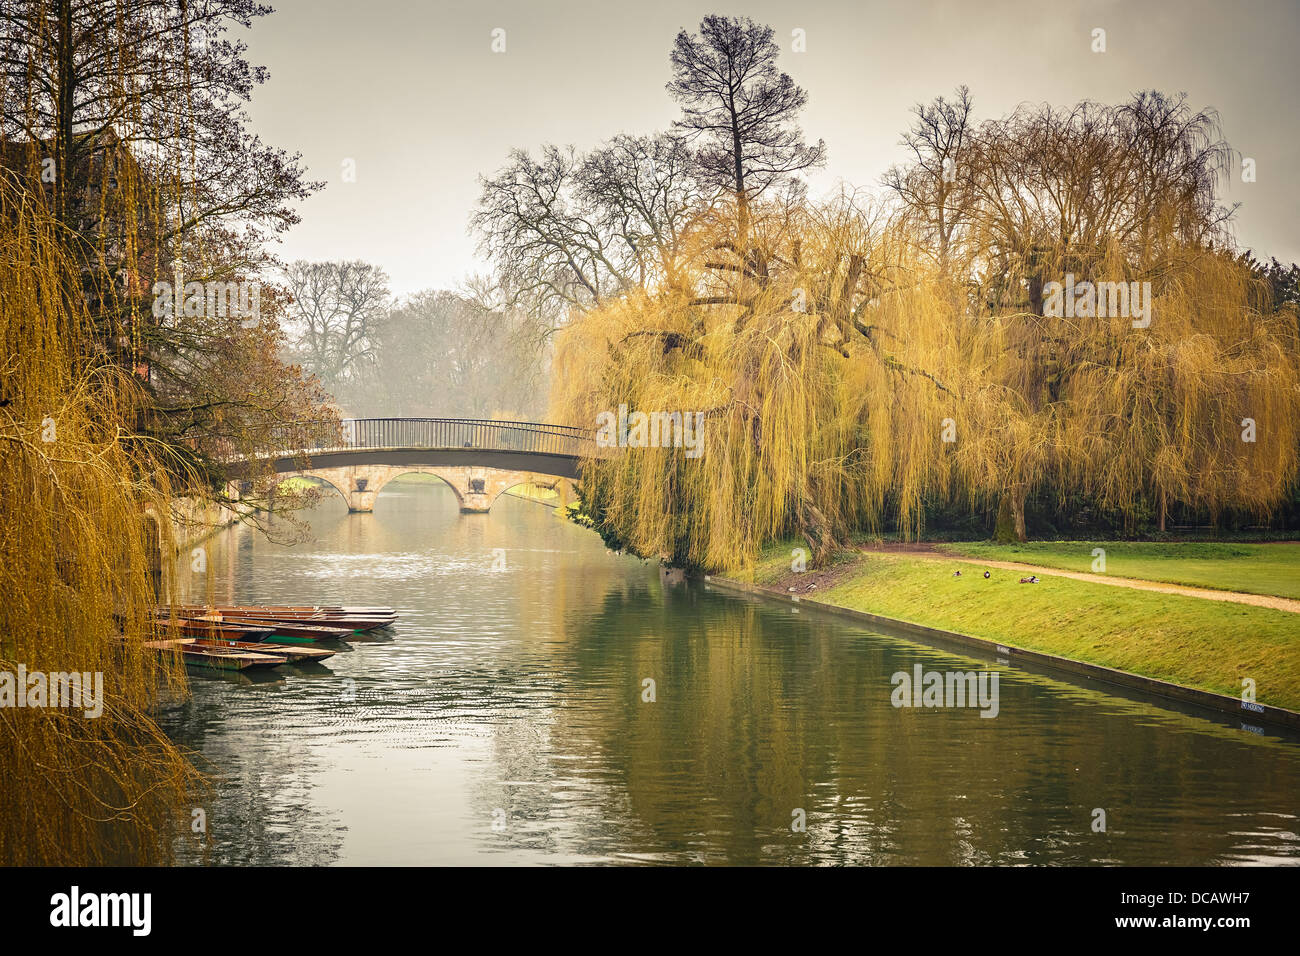 Cam river, Cambridge - Stock Image